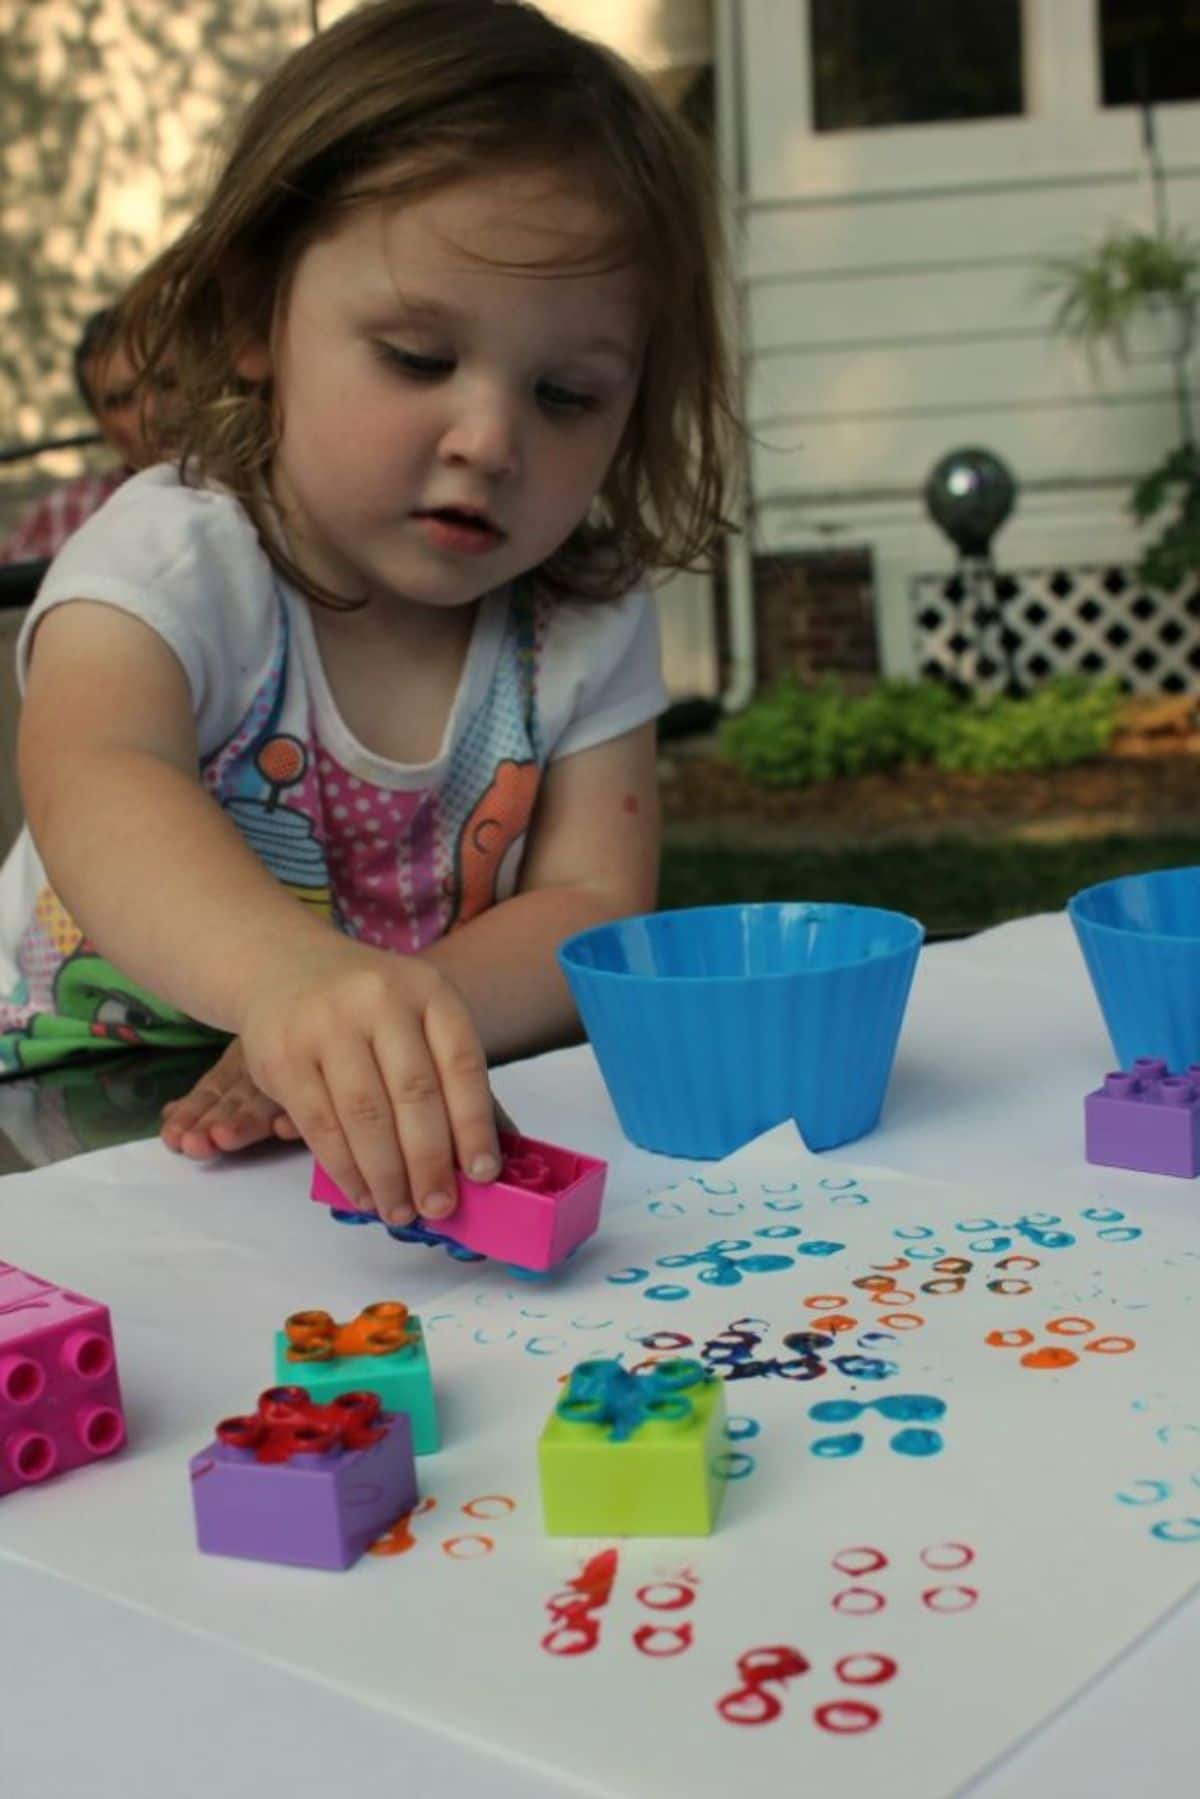 a young girl leans over a piece of paper on a table. She is printing with lego bricks dipped in paint